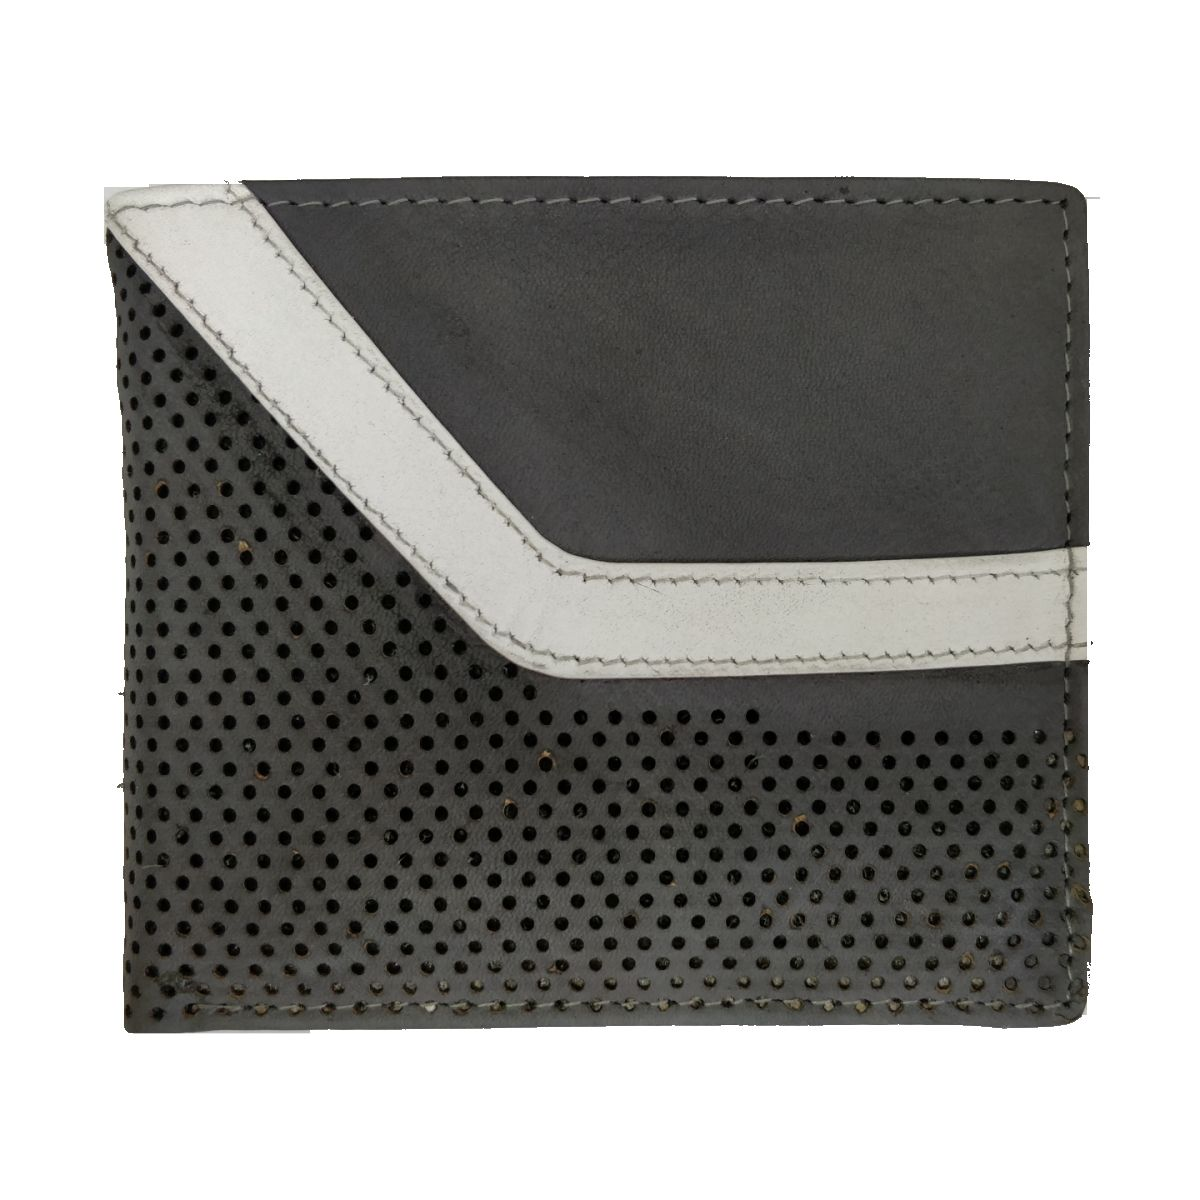 Leather Wallet With Broken Strip and Coin Pouch - Grey